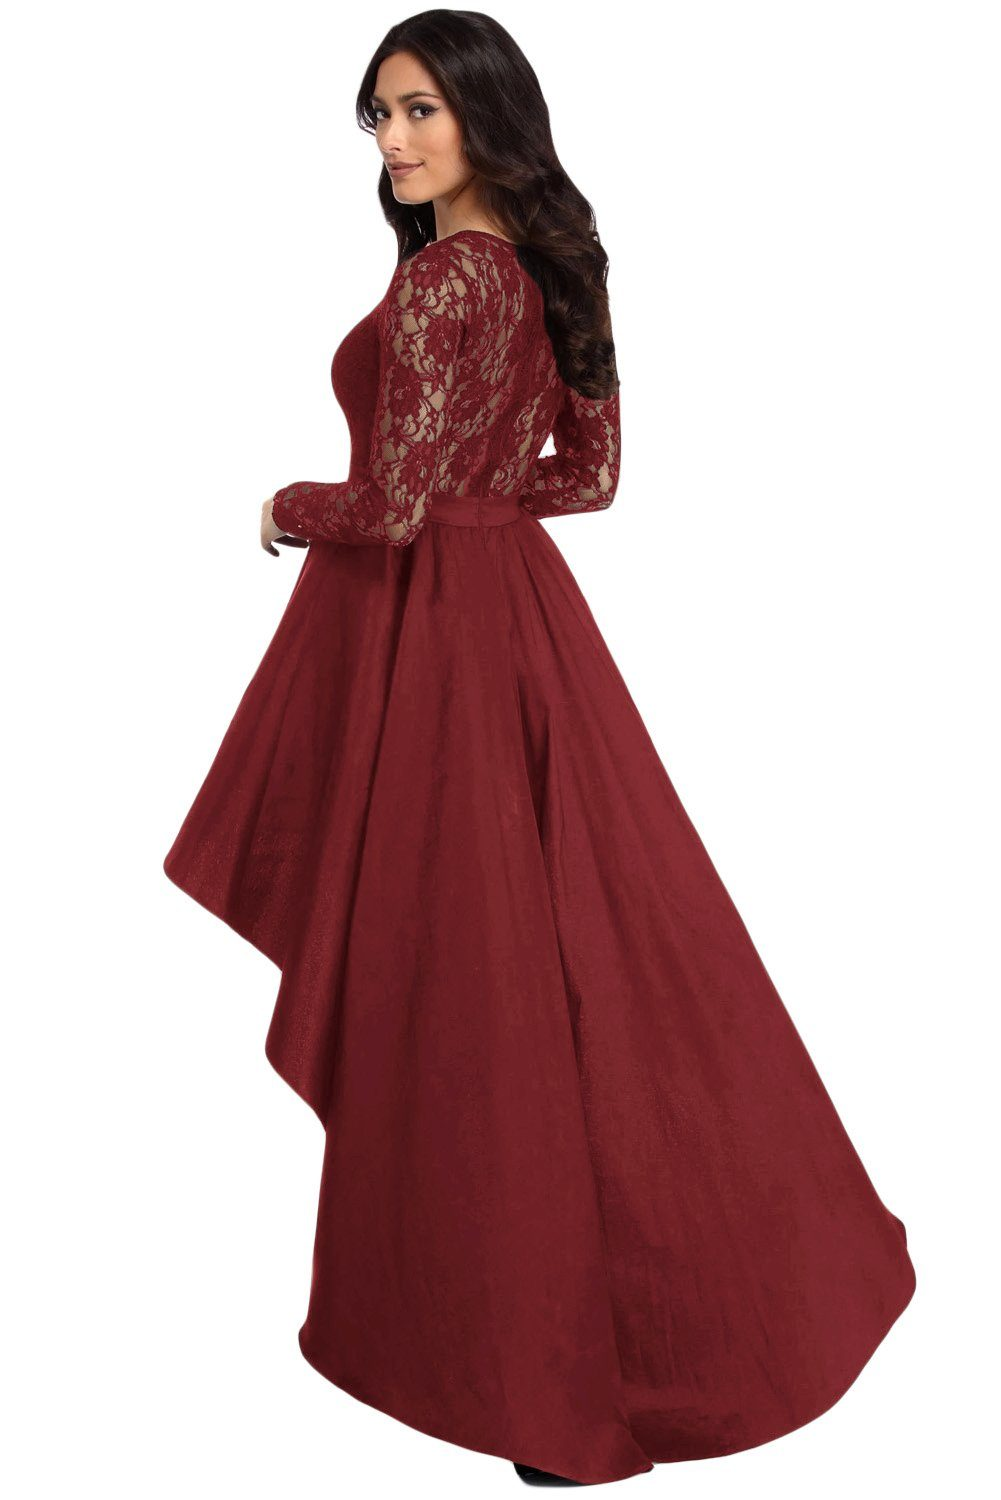 KaleaBoutique Beautiful Burgundy Long Sleeve Lace High Low Satin Prom Dress - KaleaBoutique.com